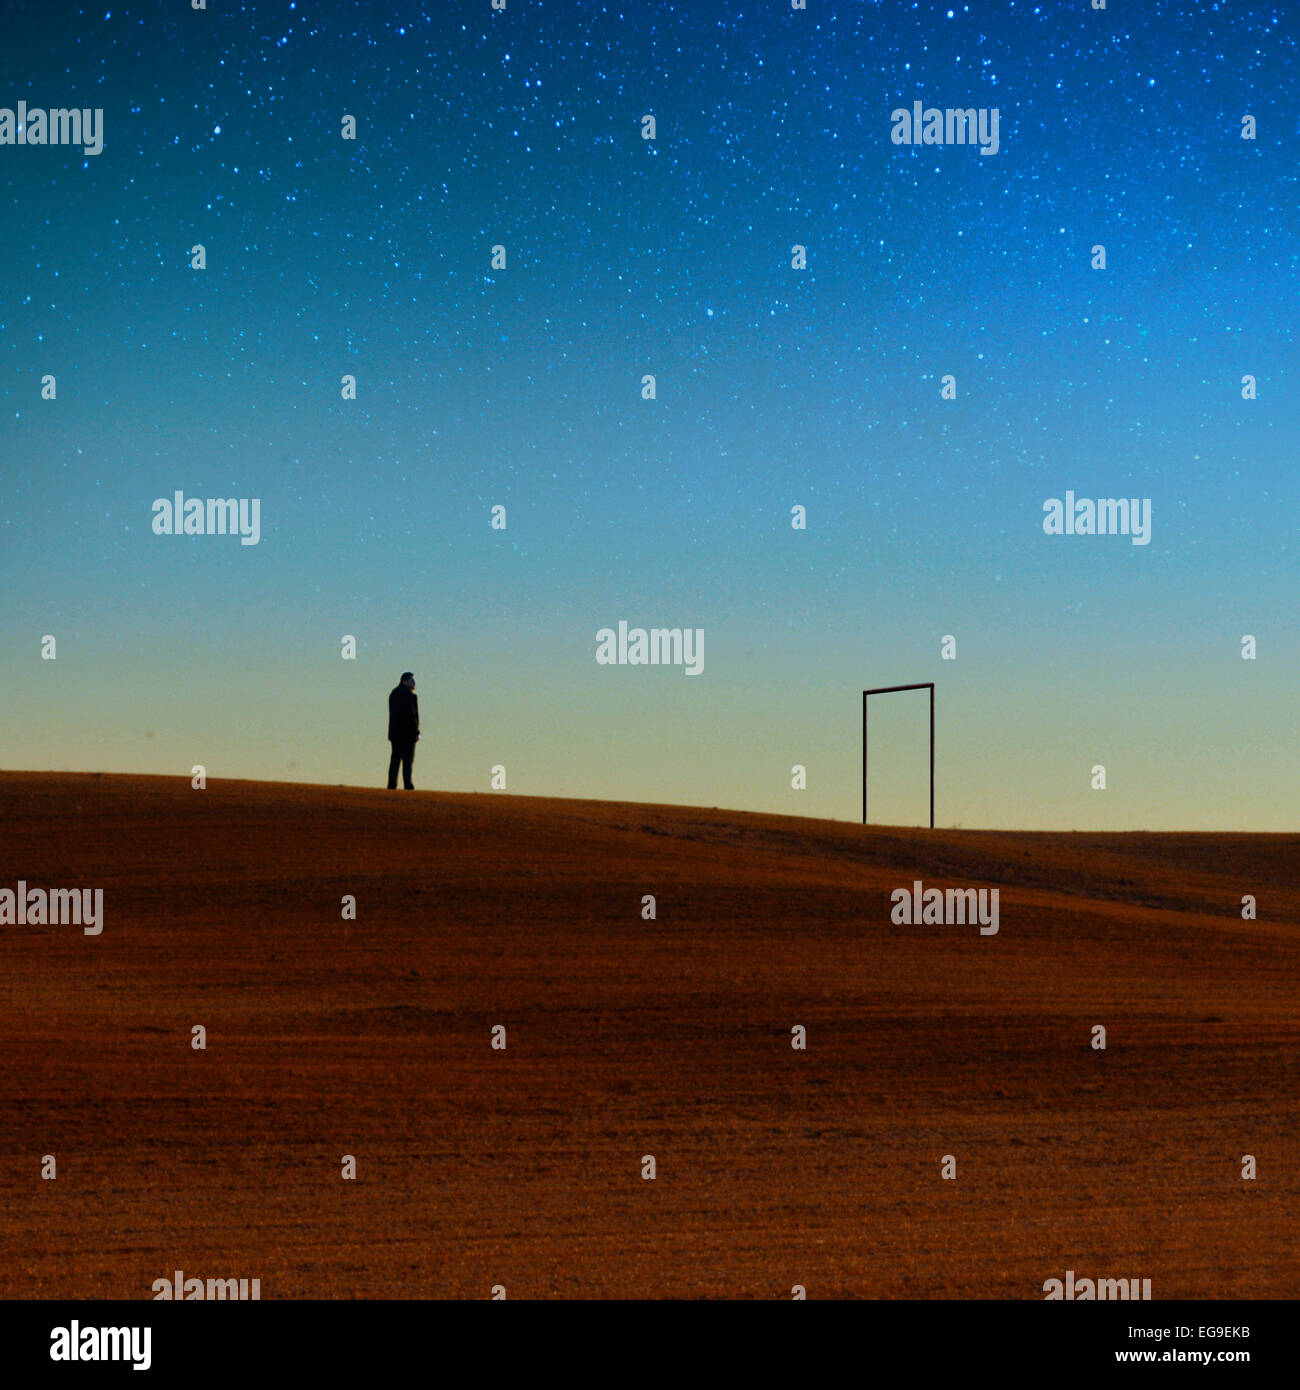 Silhouette of man against night sky - Stock Image